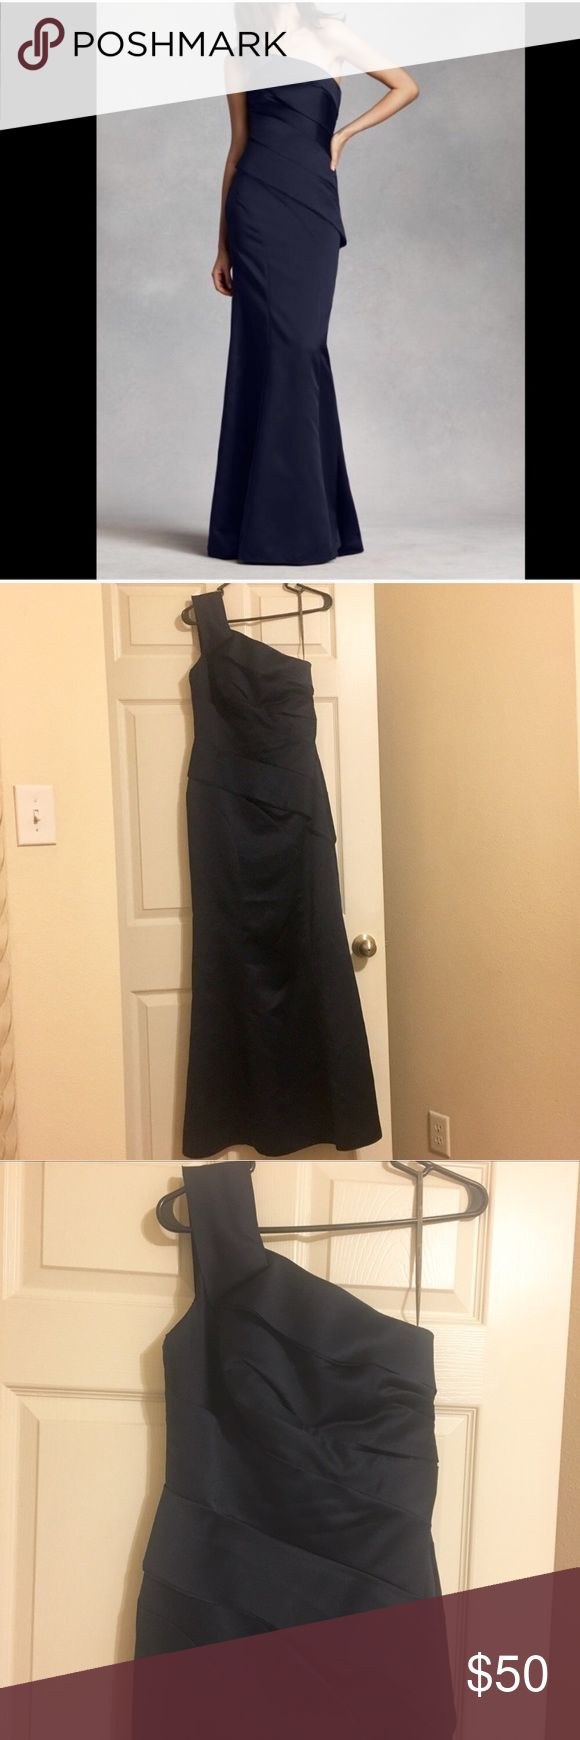 "Vera Vang Navy Satin Gown Dress Vera Vang Navy Satin Gown Dress Size 8 - altered the length only to fit hight 5'6"" Gorgeous perfect for wedding prom or formal black tie event White by Vera Wang Dresses Maxi"